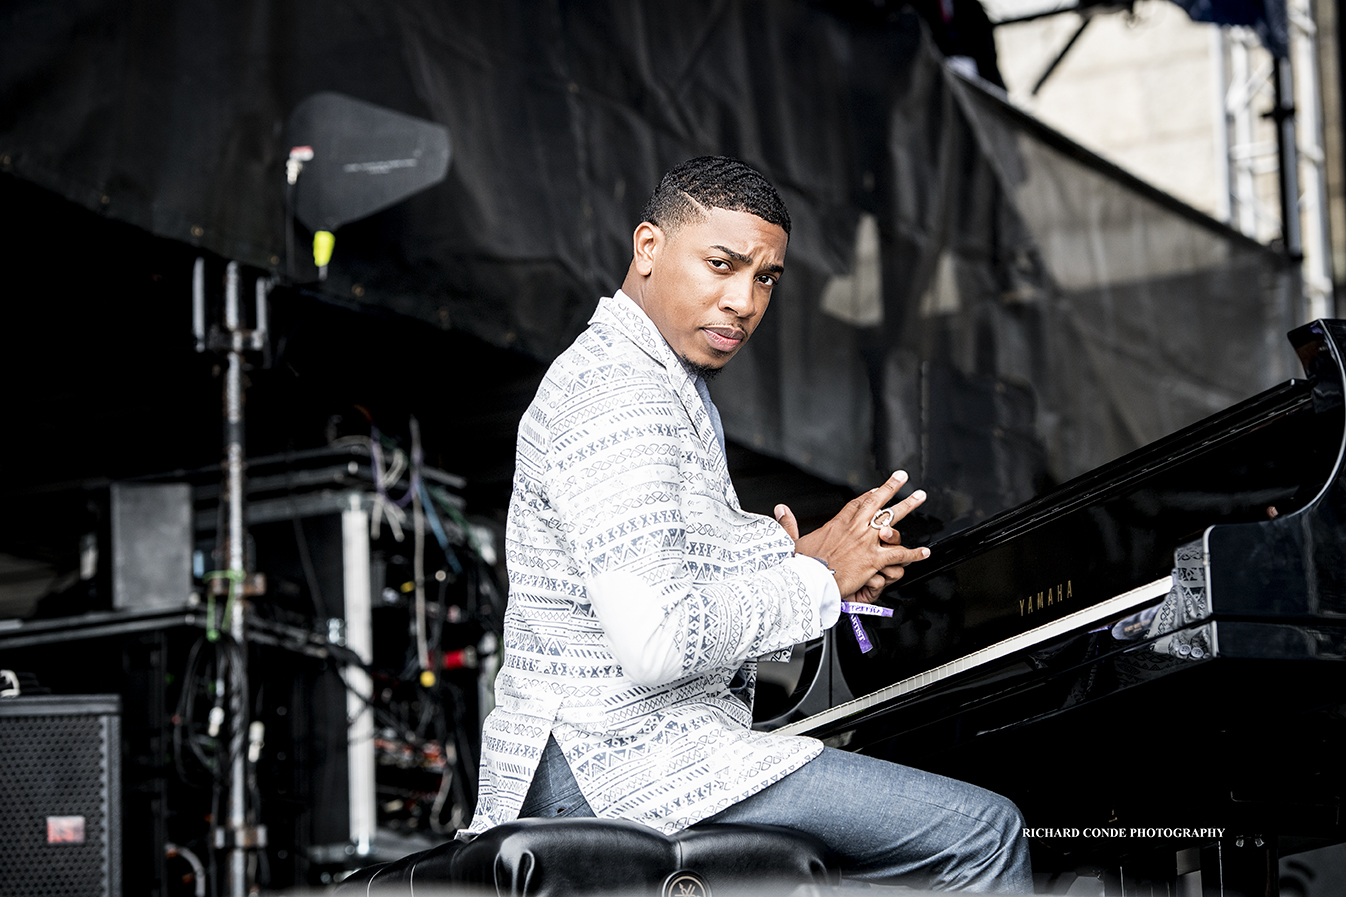 Christian Sands at the 2017 Newport Jazz Festival